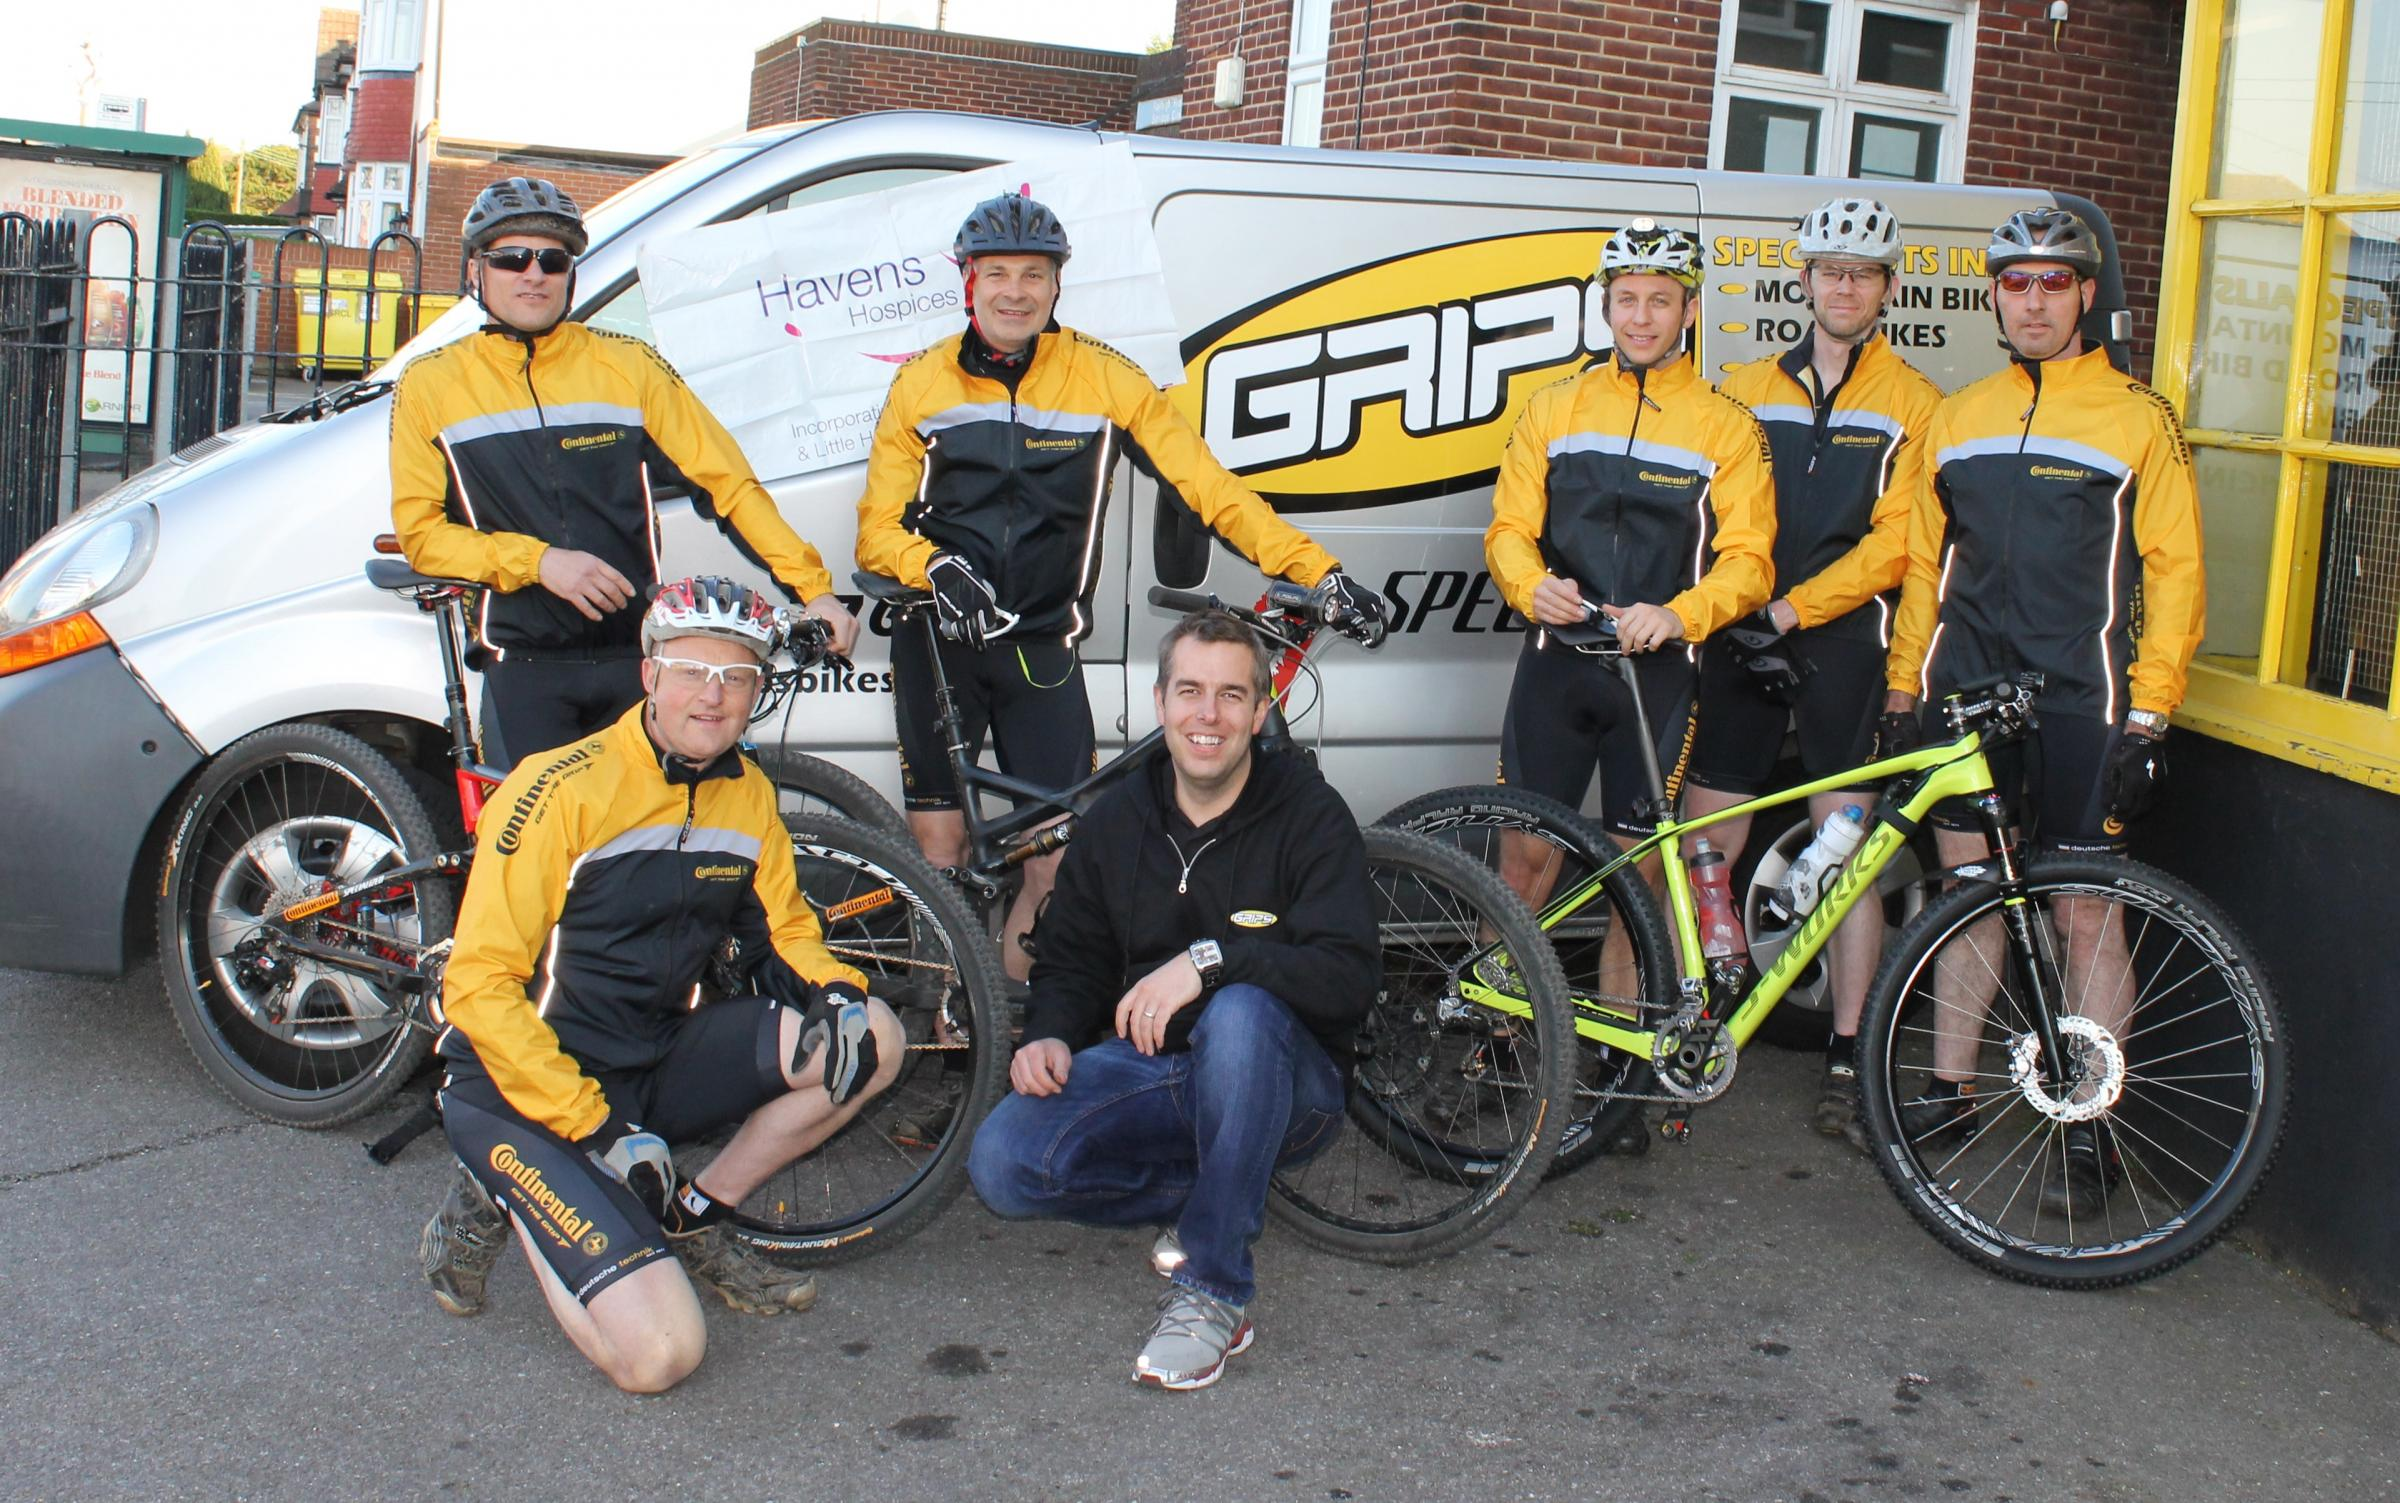 Cyclists with a cause – Grips Riders are raising money for local hospices